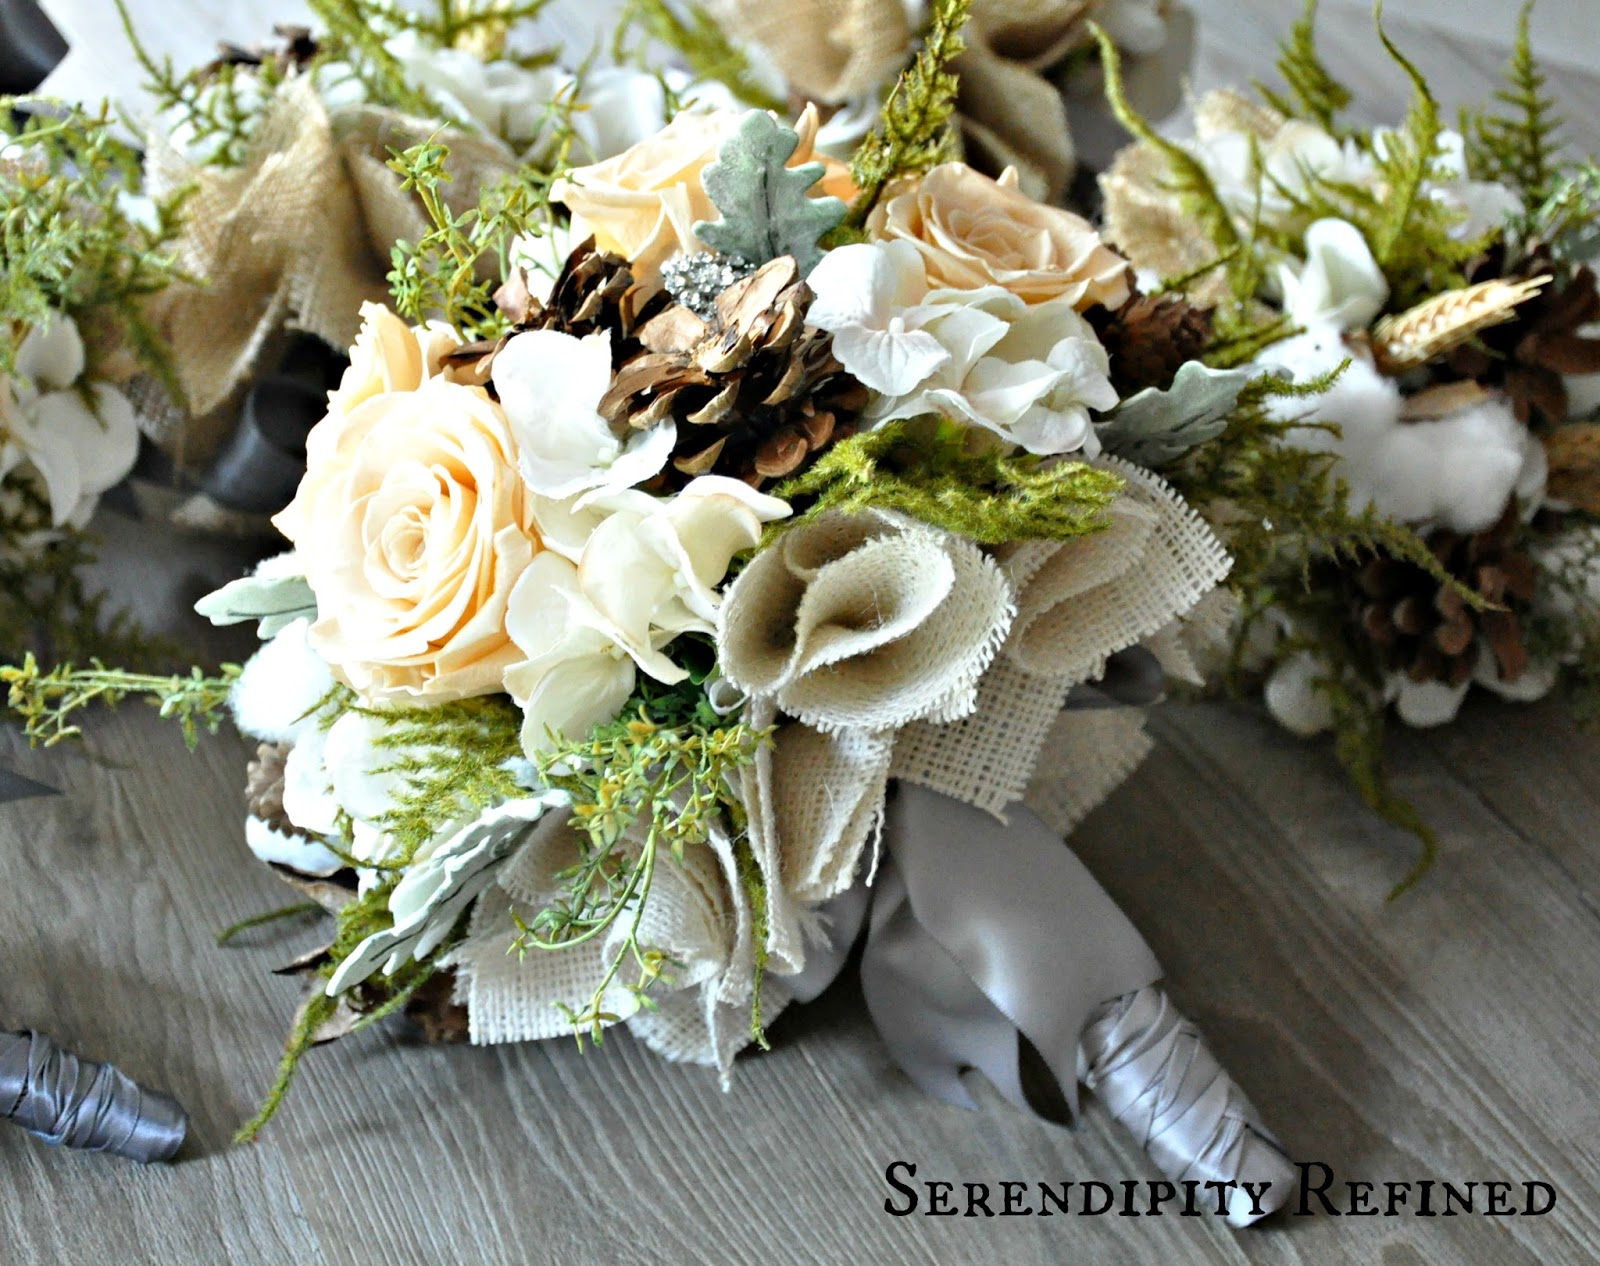 Serendipity Refined Blog September 2013